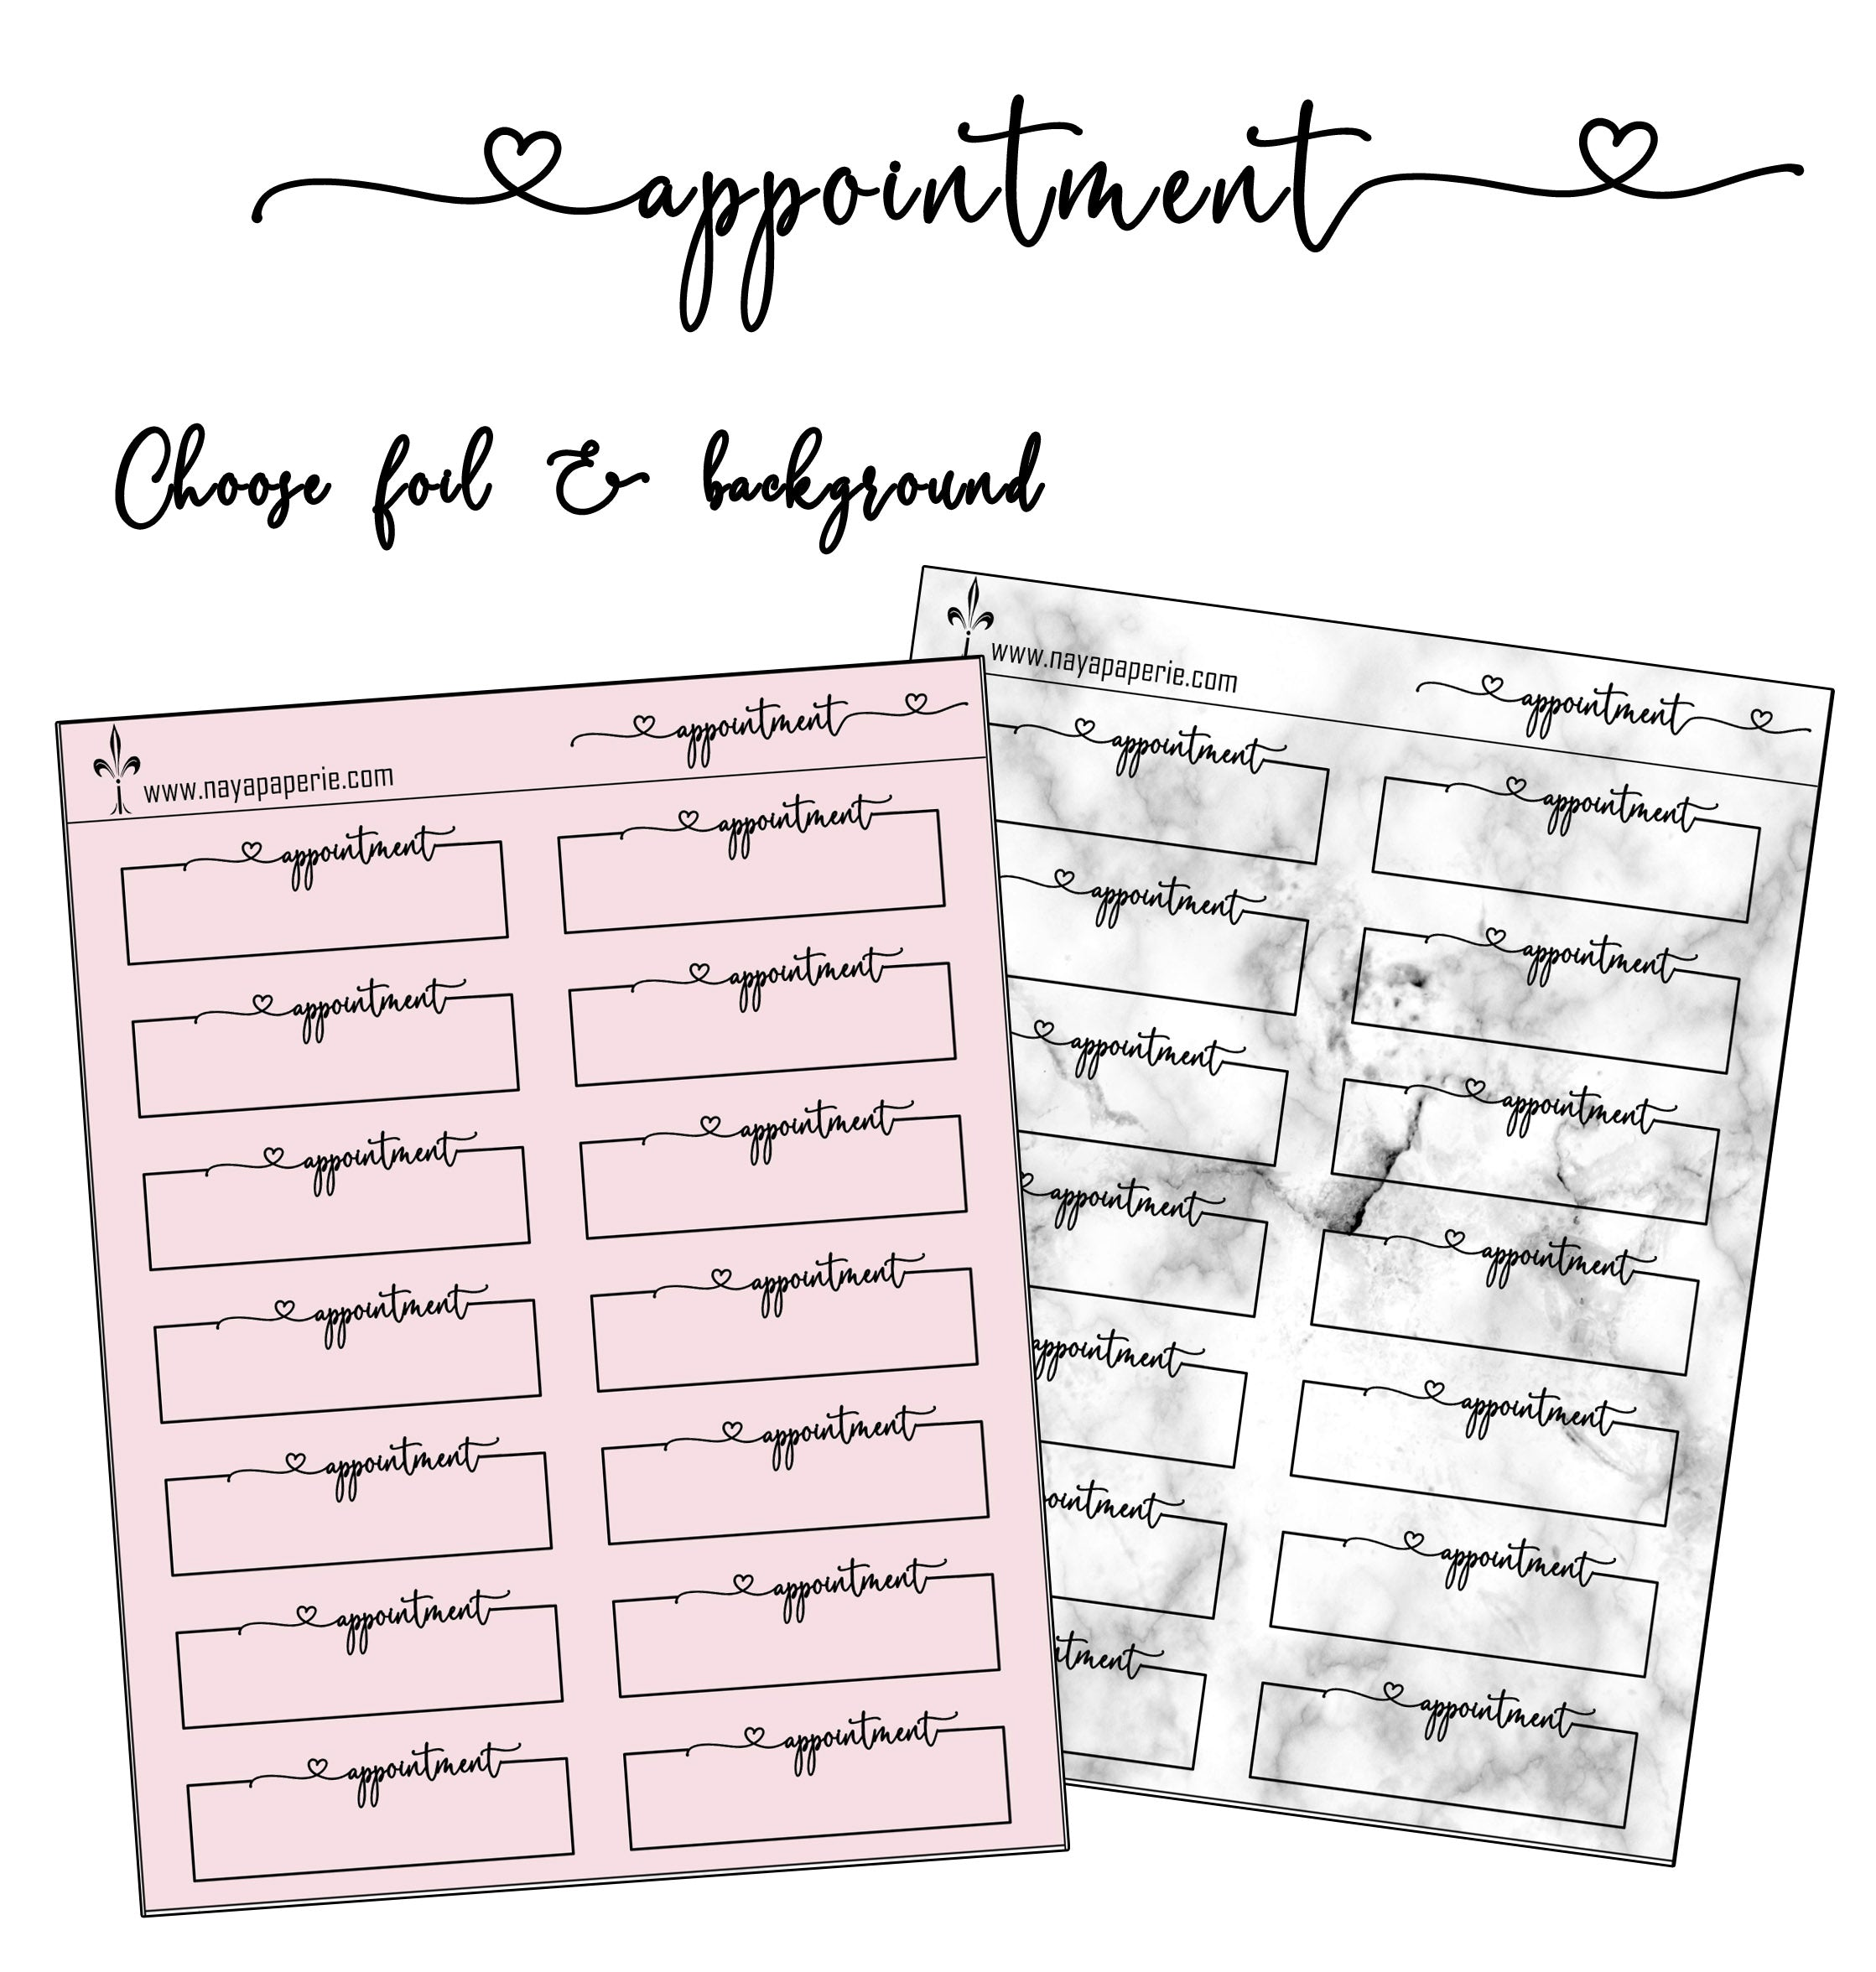 Foiled - Appointment quarter boxes